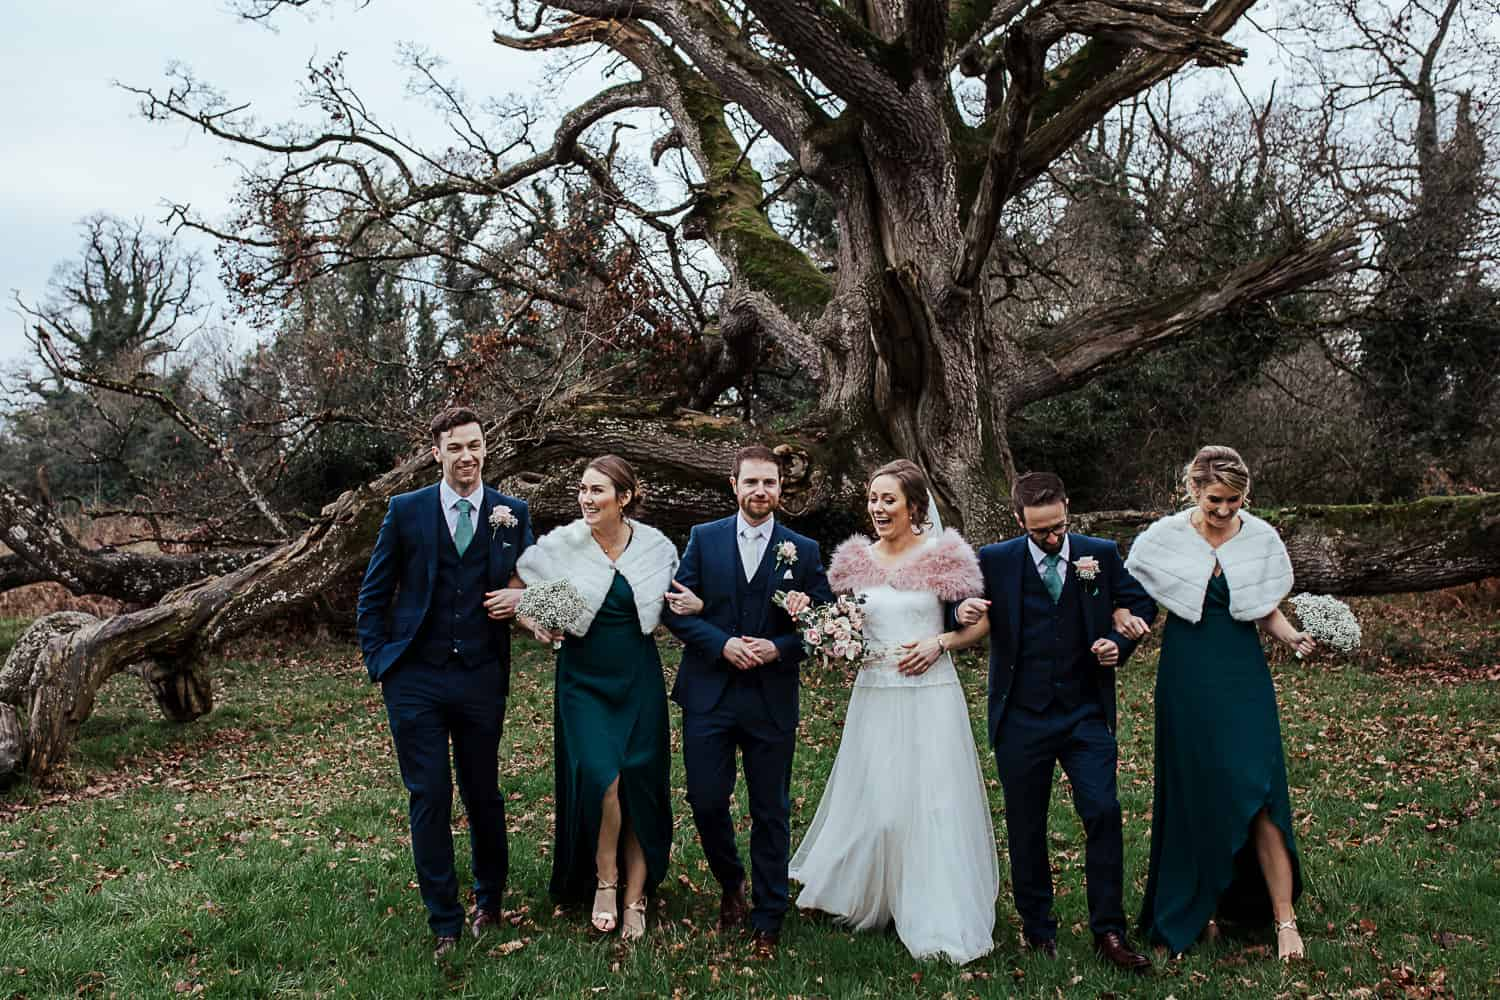 bridal party in green dresses winter wedding ireland wedding photographer